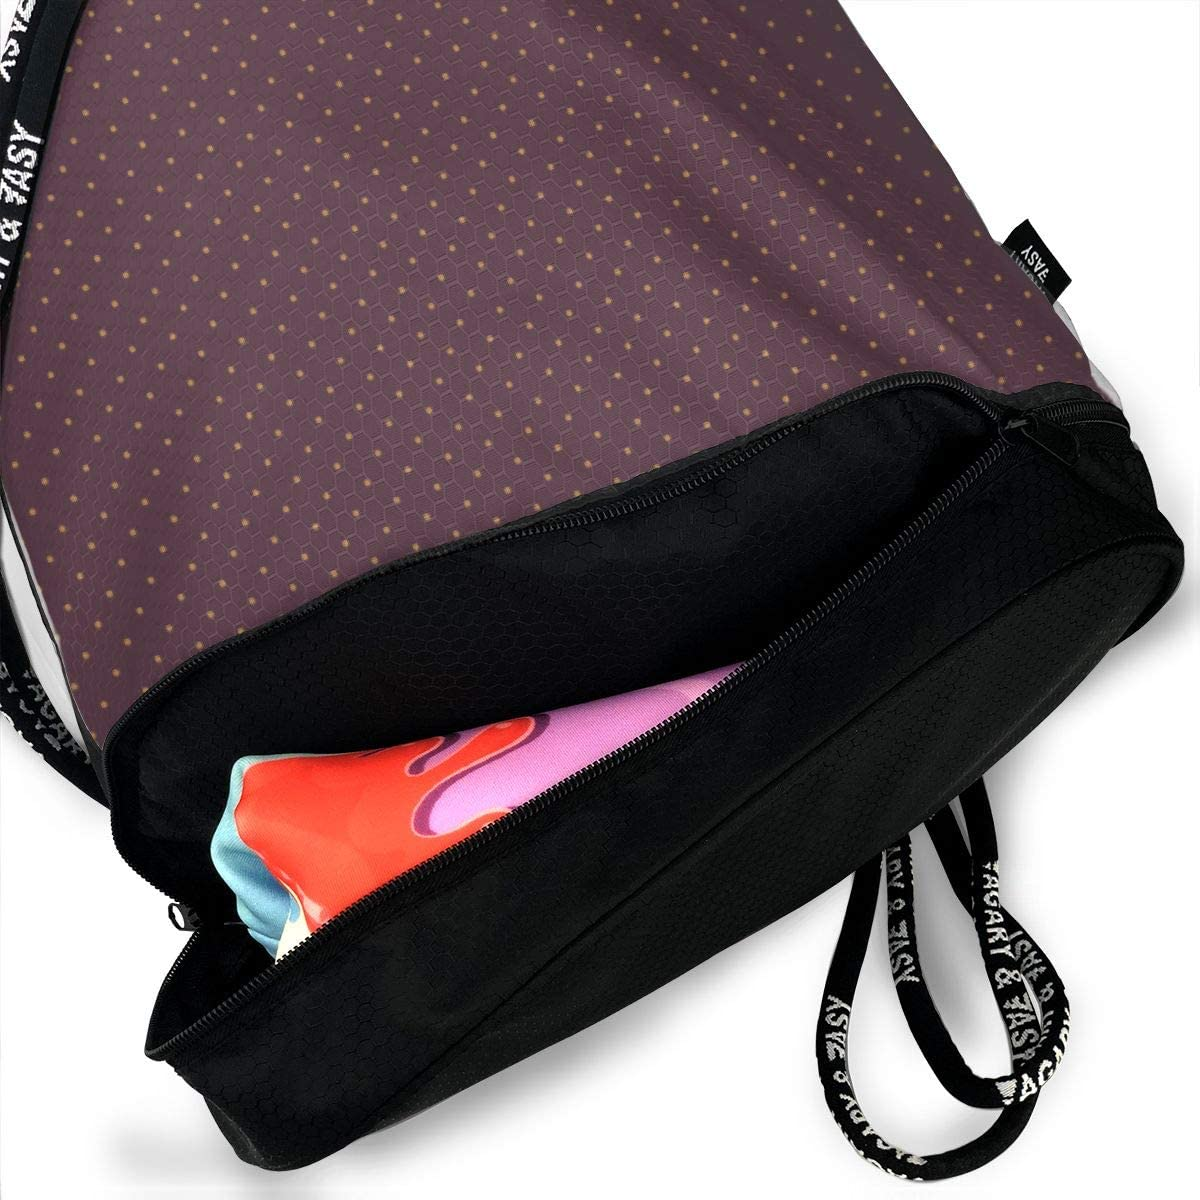 Swiss Peanut Butter Jelly Drawstring Backpack Sports Athletic Gym Cinch Sack String Storage Bags for Hiking Travel Beach